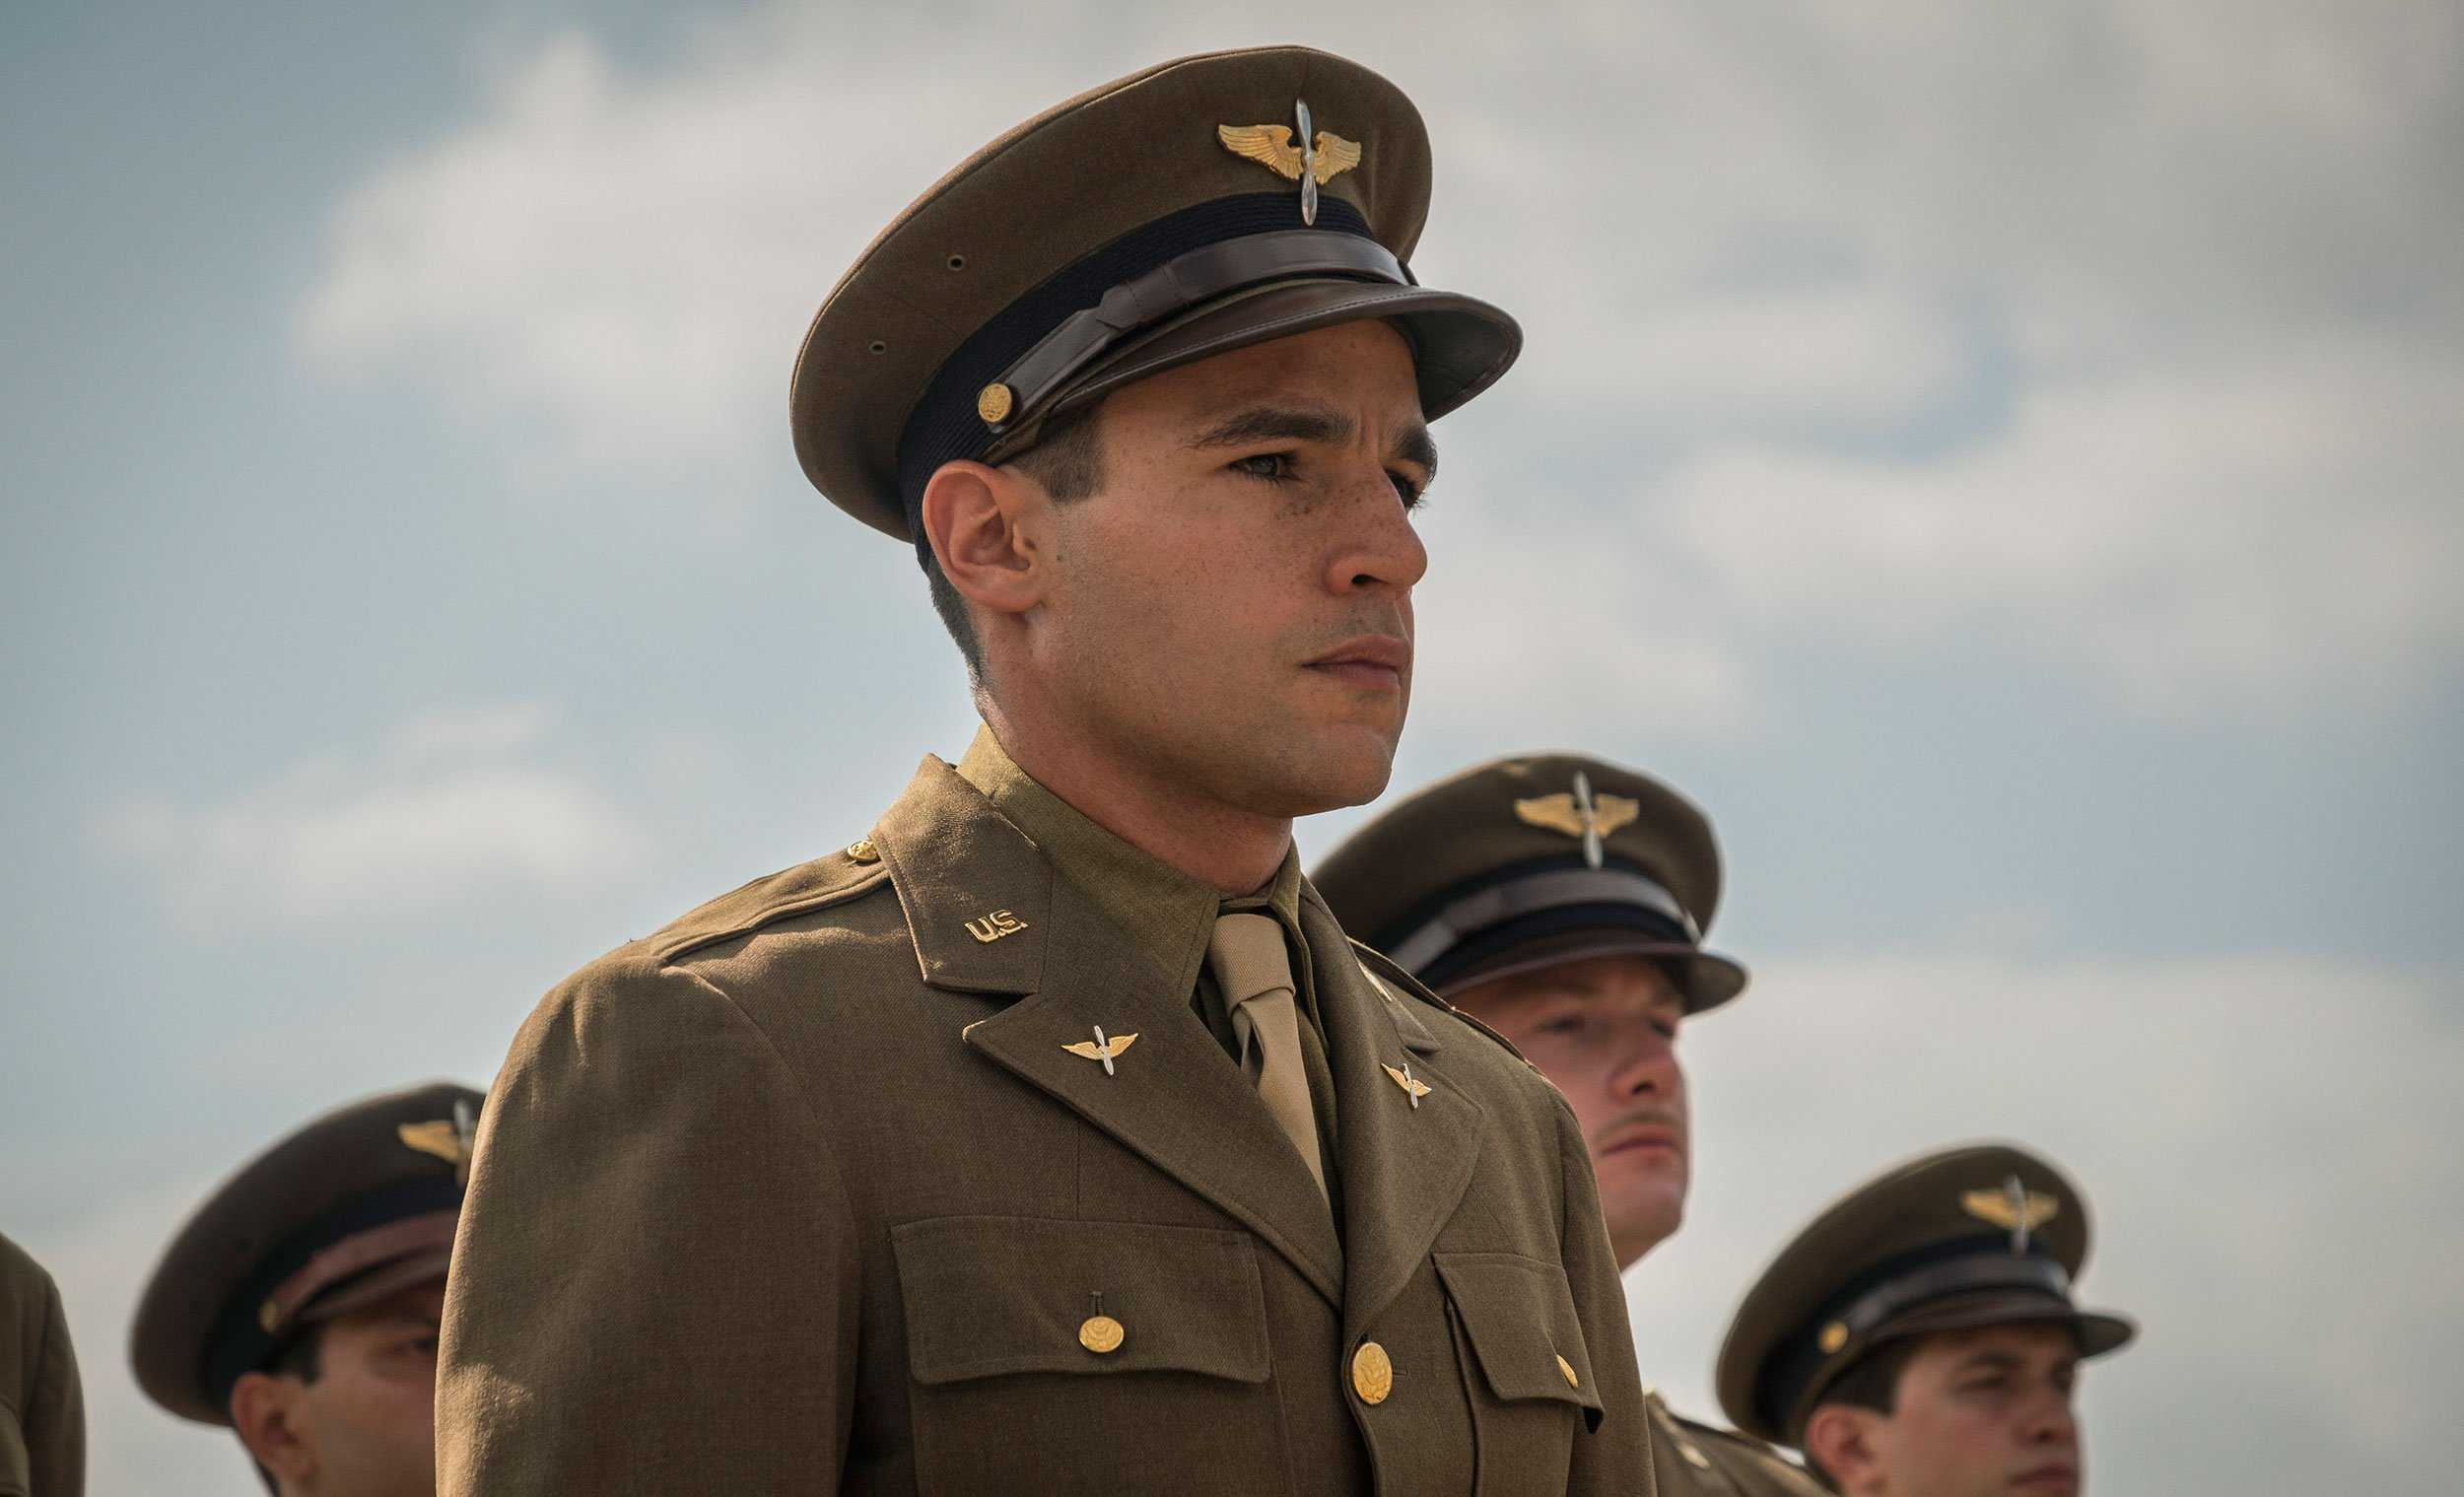 Review: Hulu's Catch-22 Lyrically Depicts a War's Inanities